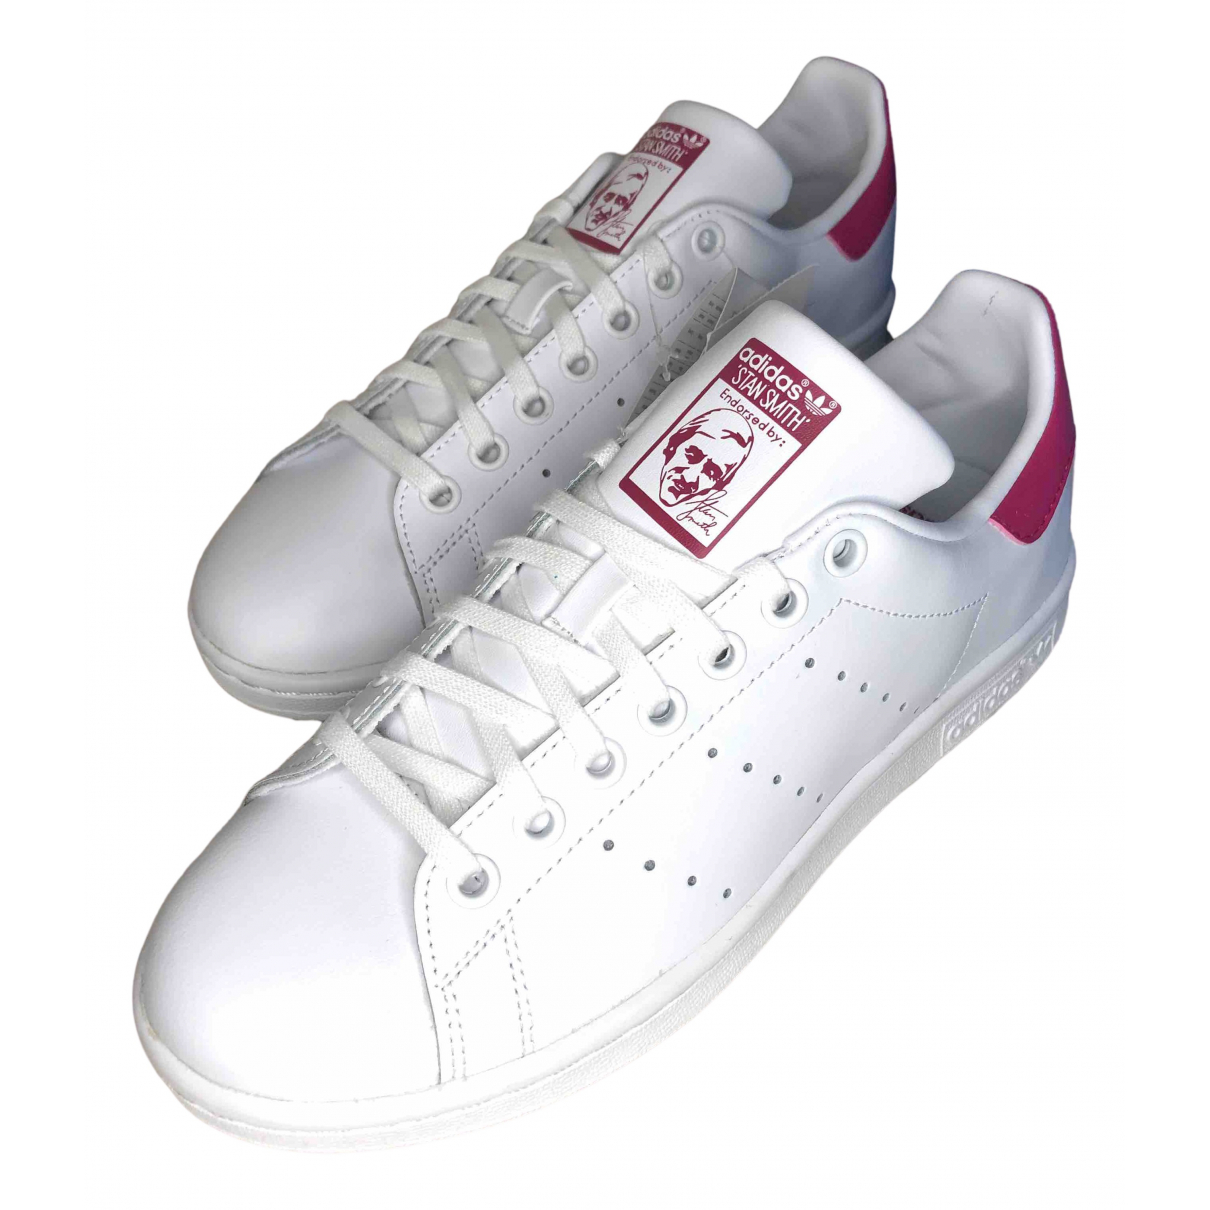 Adidas Stan Smith White Leather Trainers for Women 38 EU